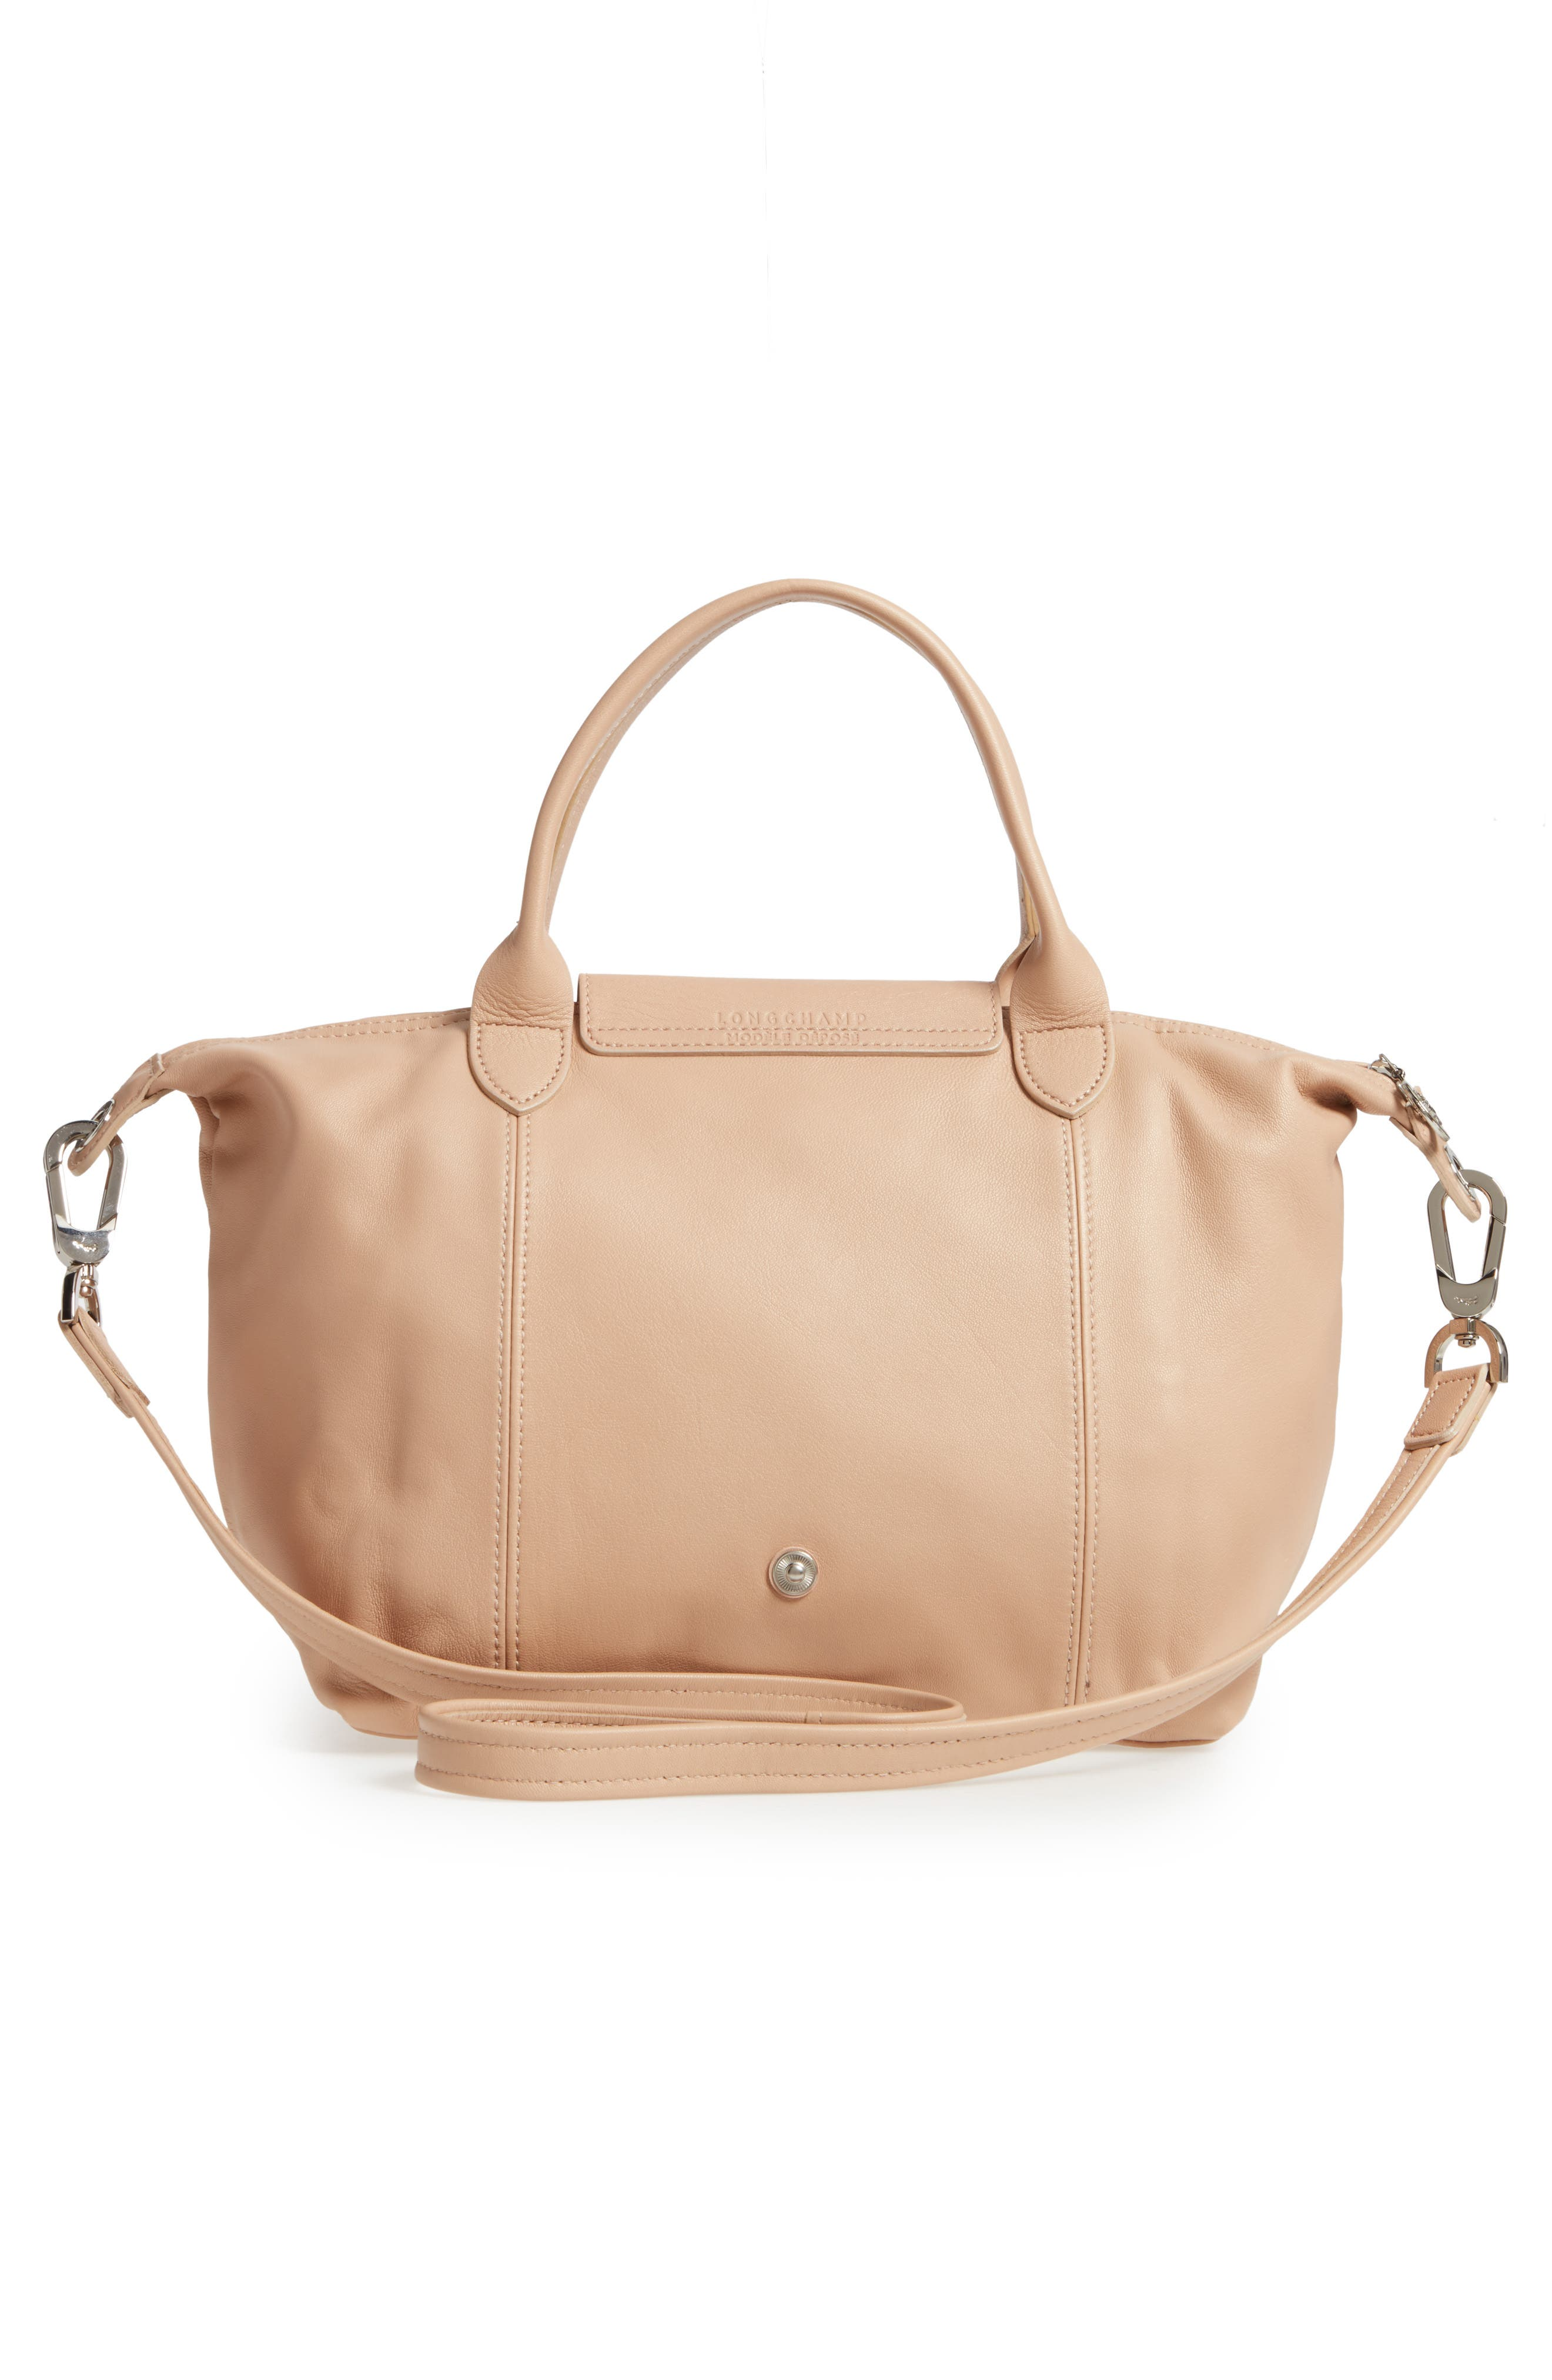 Small 'Le Pliage Cuir' Leather Top Handle Tote,                             Alternate thumbnail 44, color,